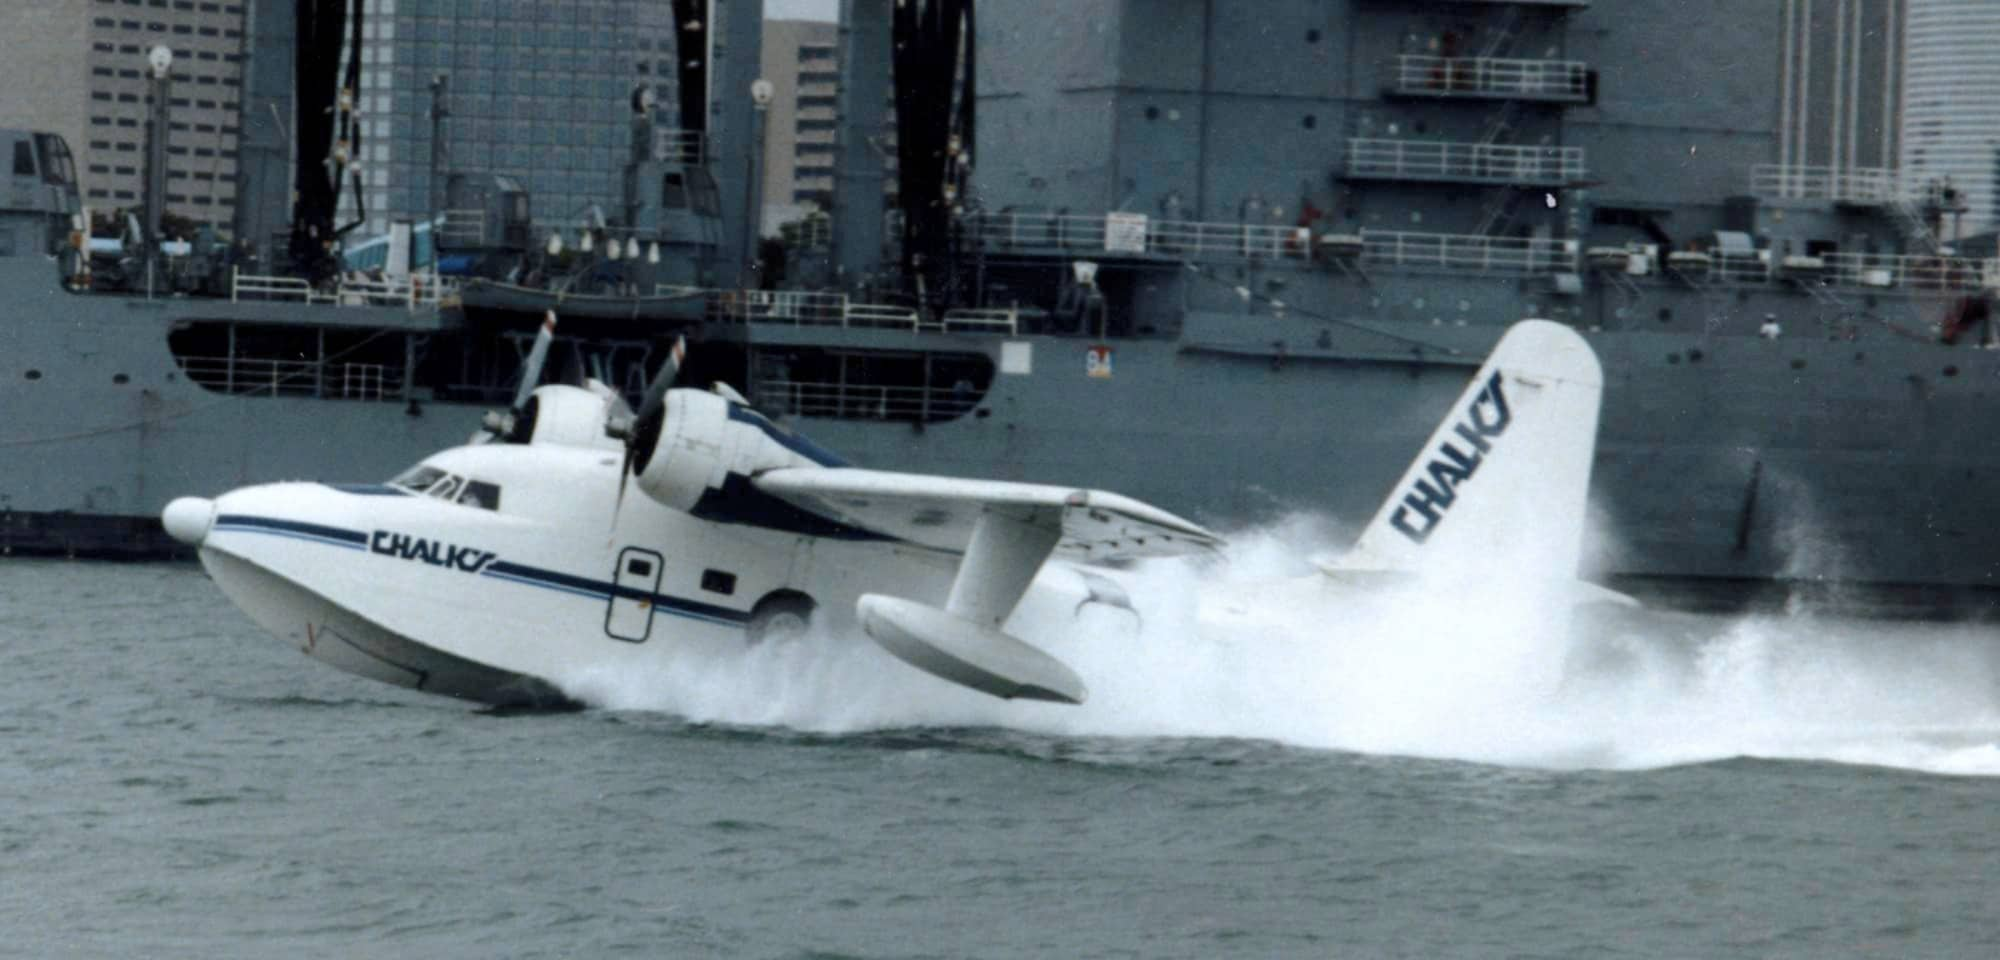 A seaplane landing in the harbor next to a battle ship